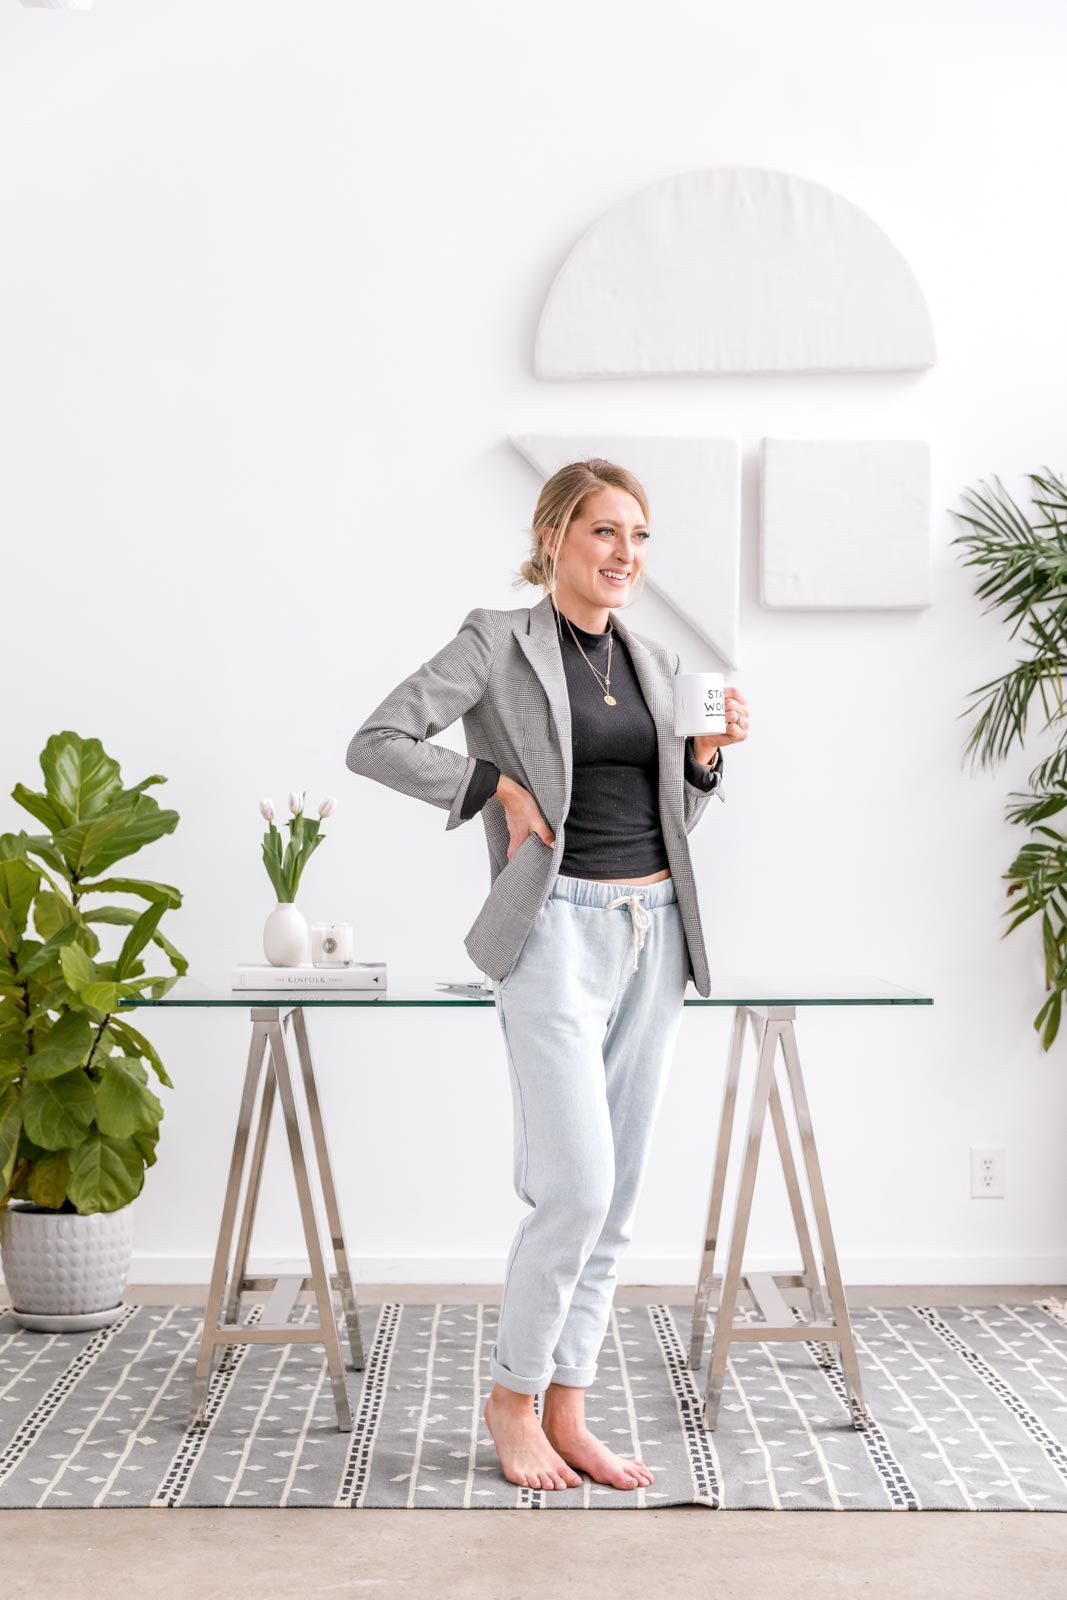 Work from home outfit, dress shirt, casual wear, formal wear